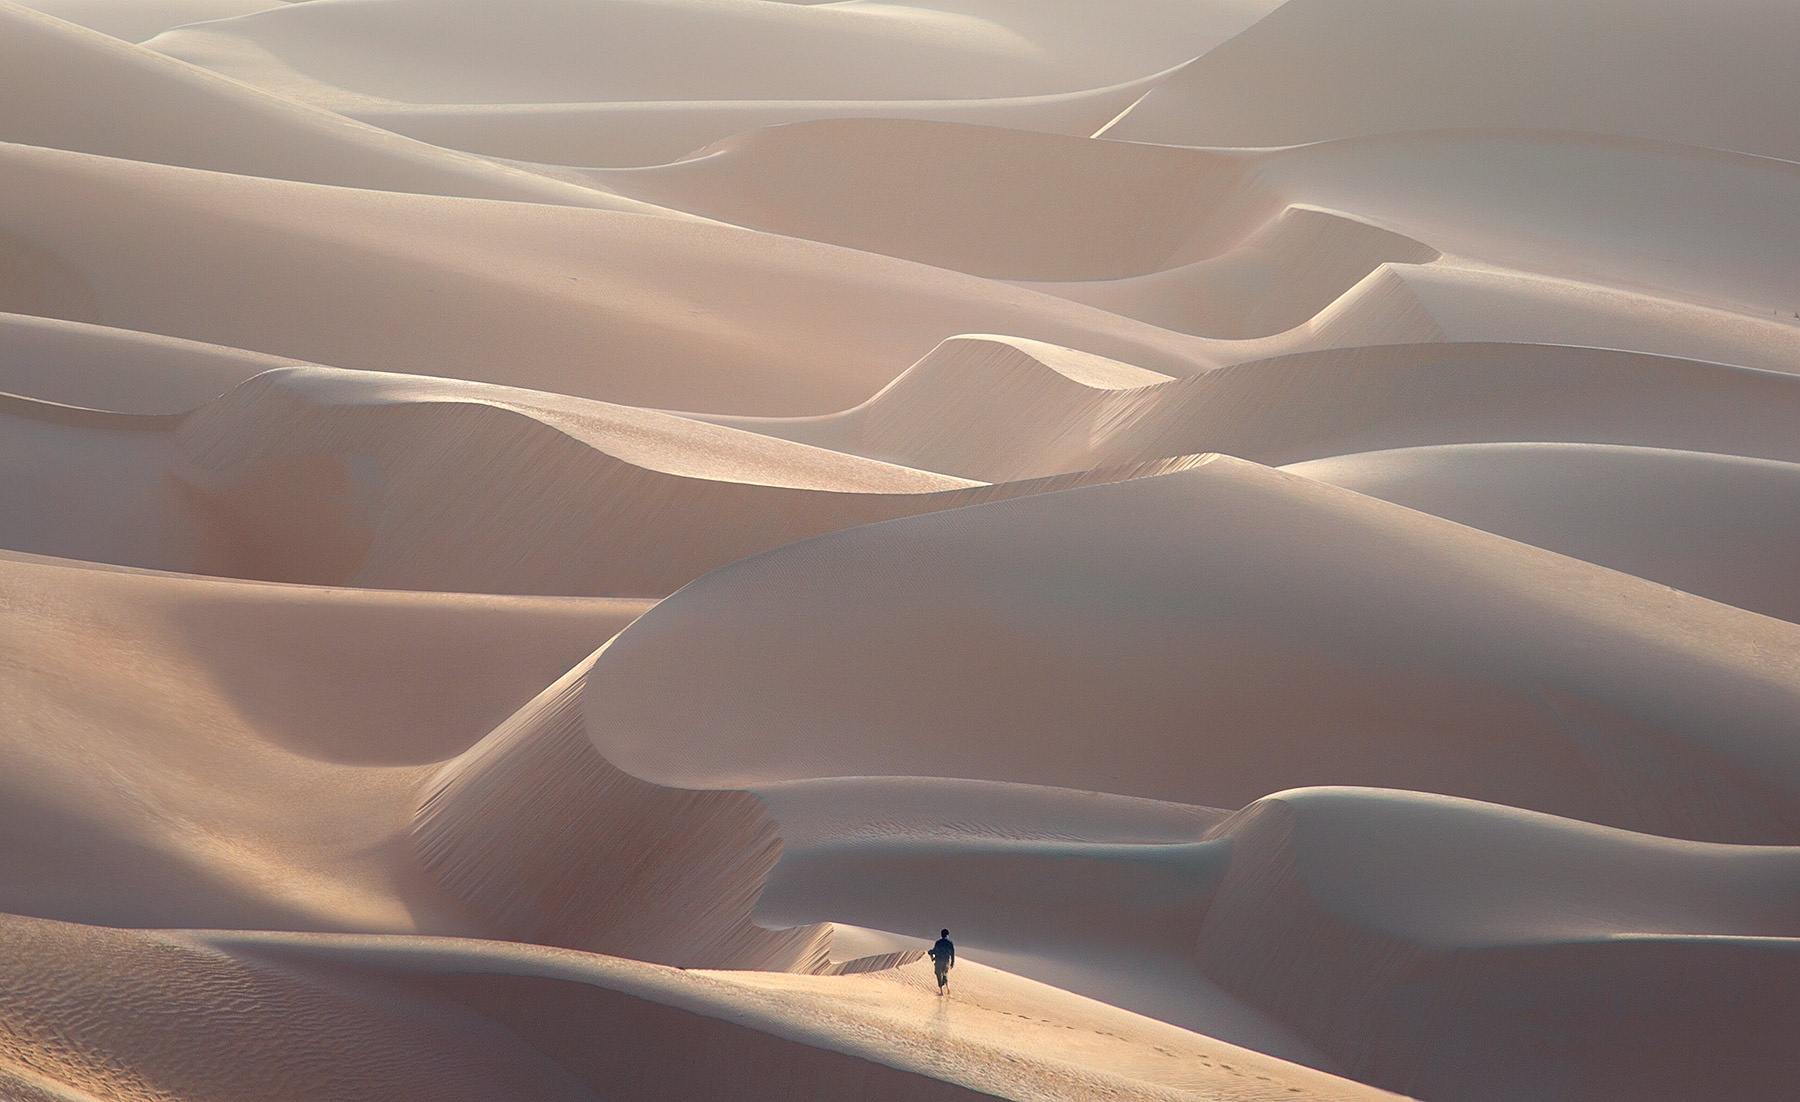 United Arab Emirates, Empty Quarter, dune, photo